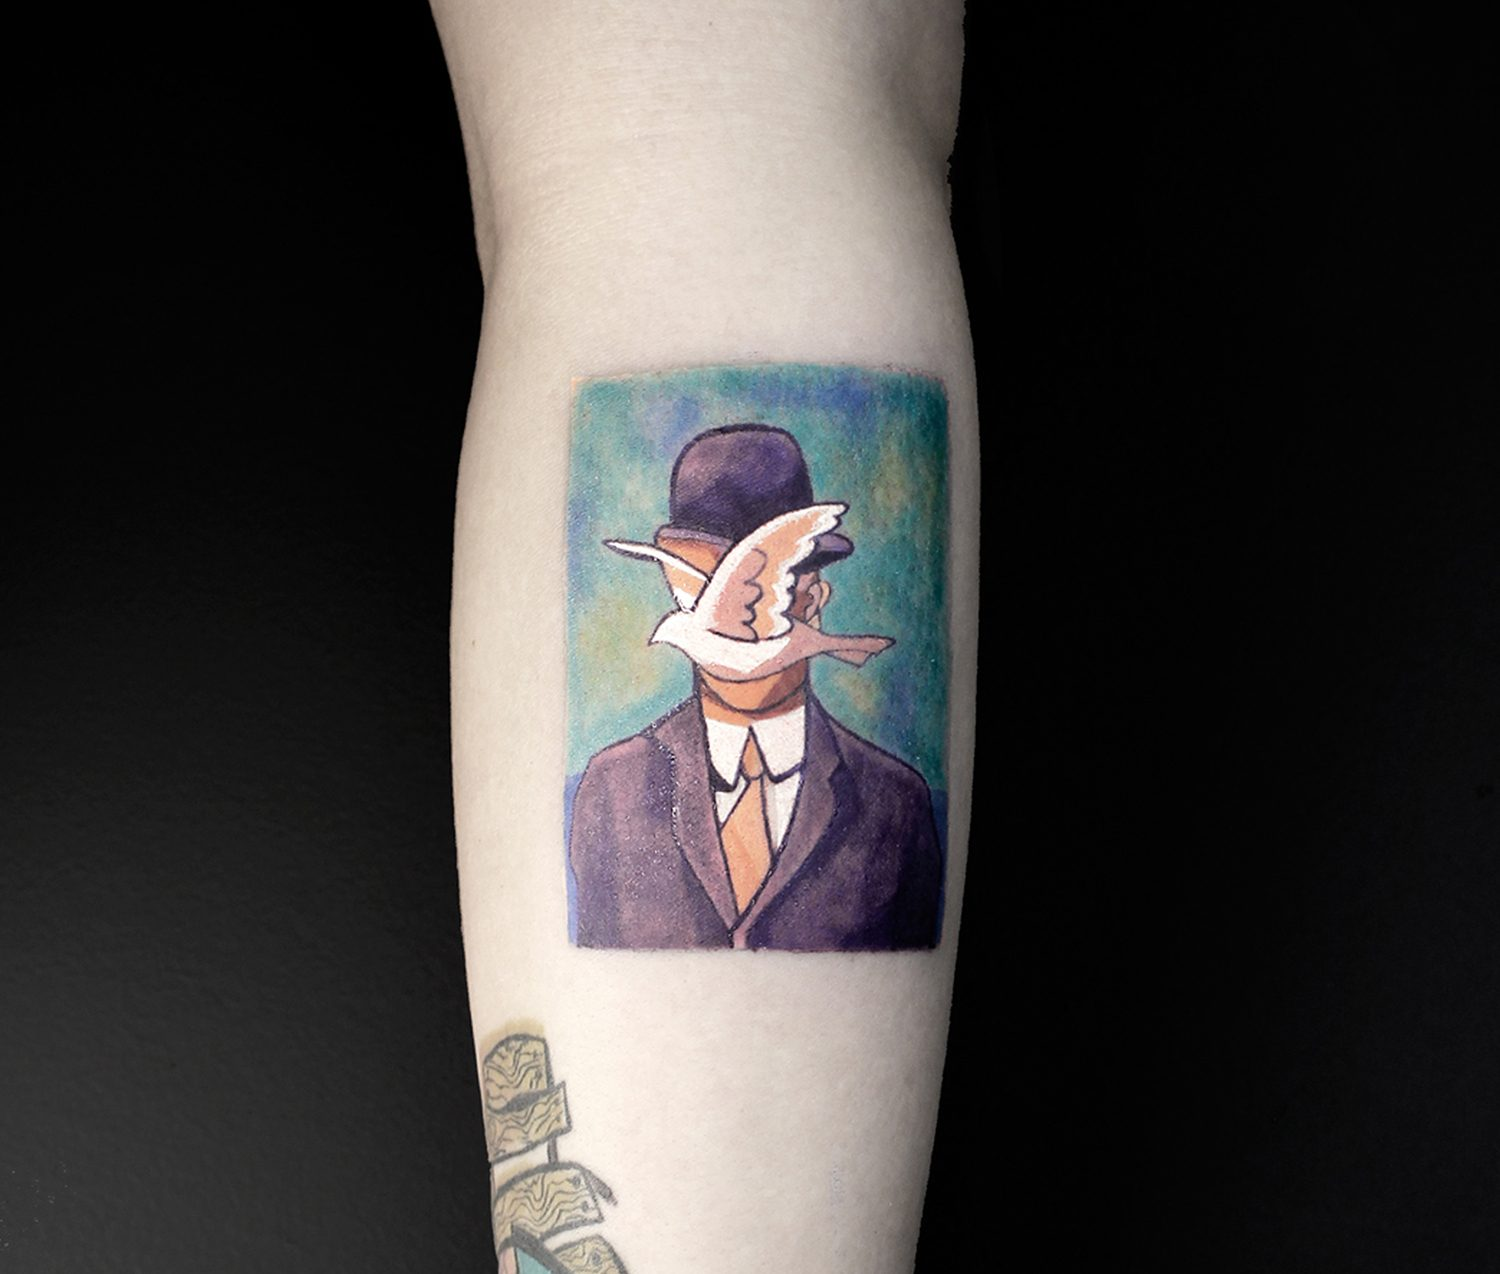 son of man, magritte remake tattoo